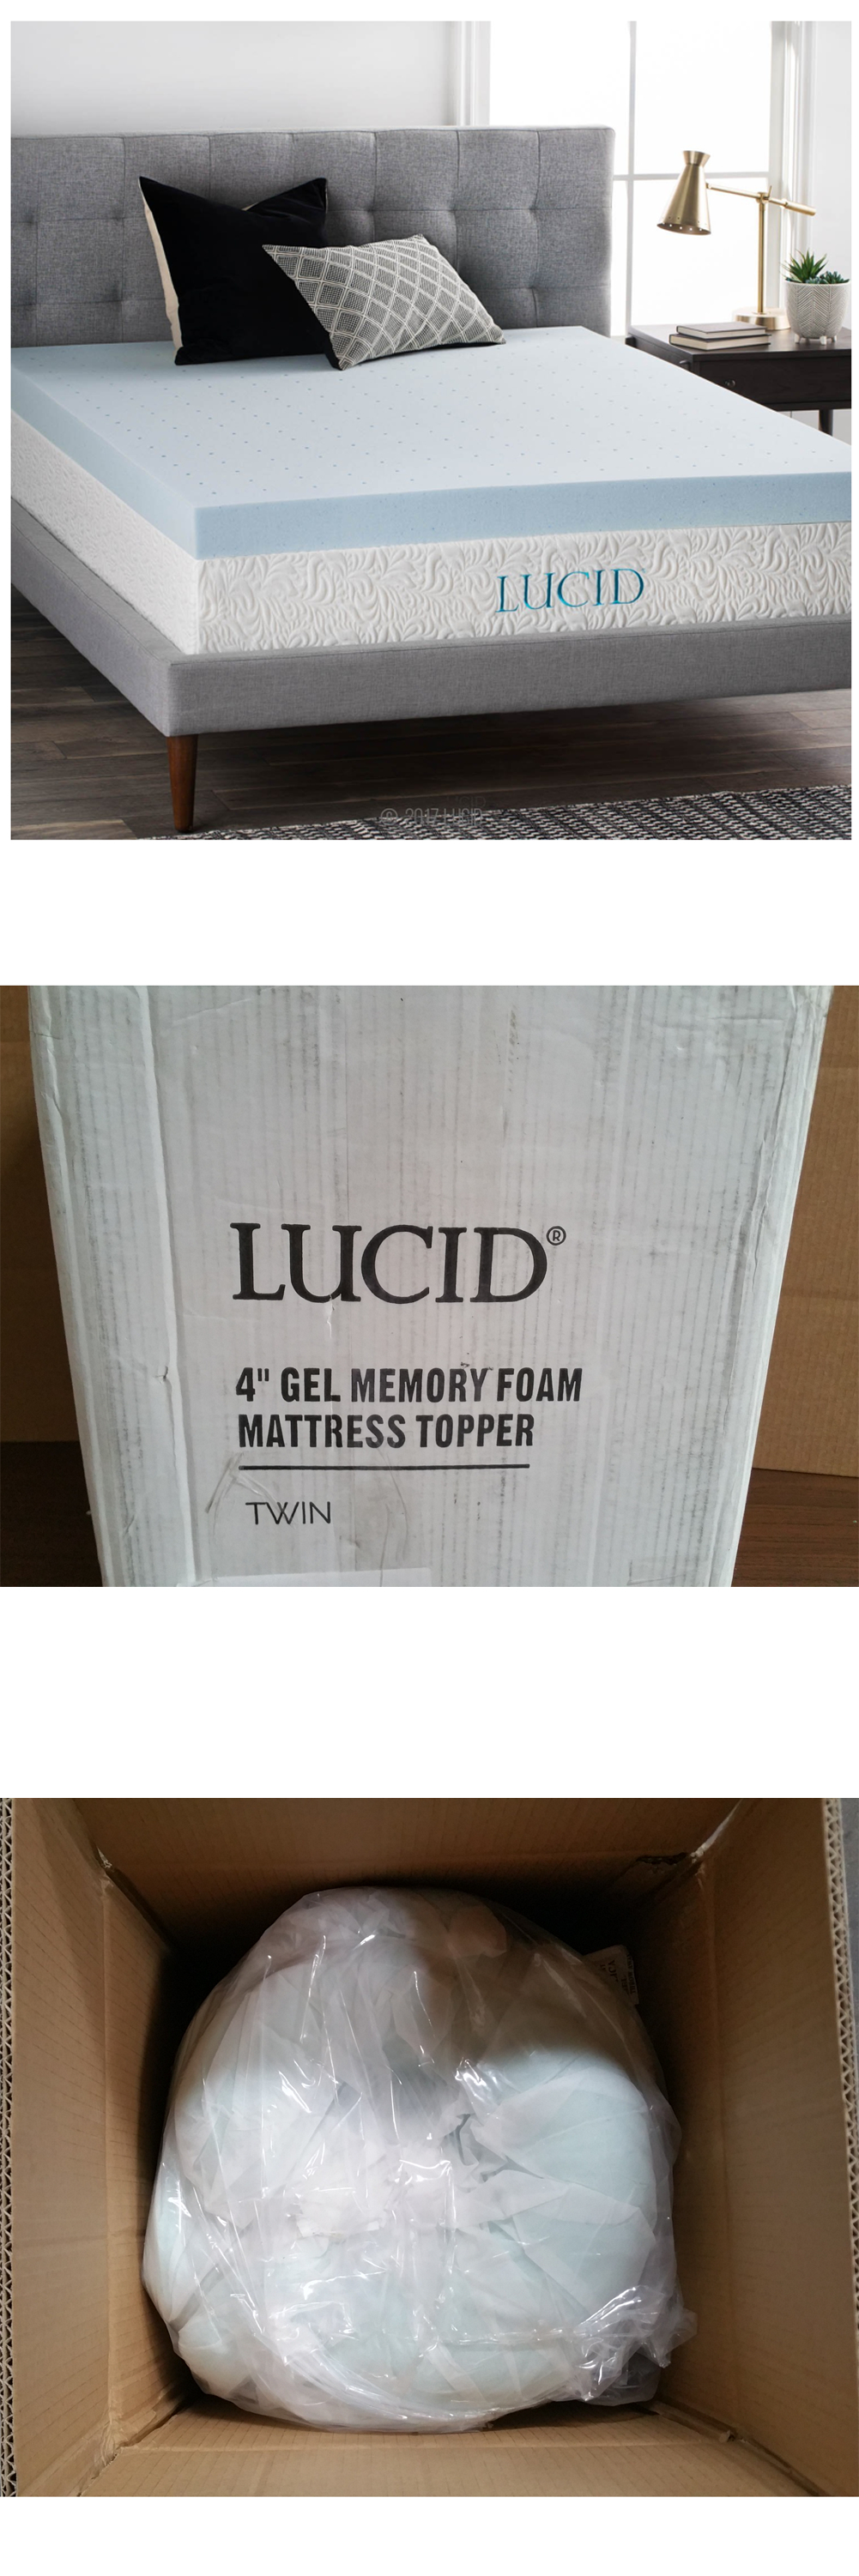 Mattress Pads and Feather Beds 175751 Lucid 4 Inch Gel Memory Foam